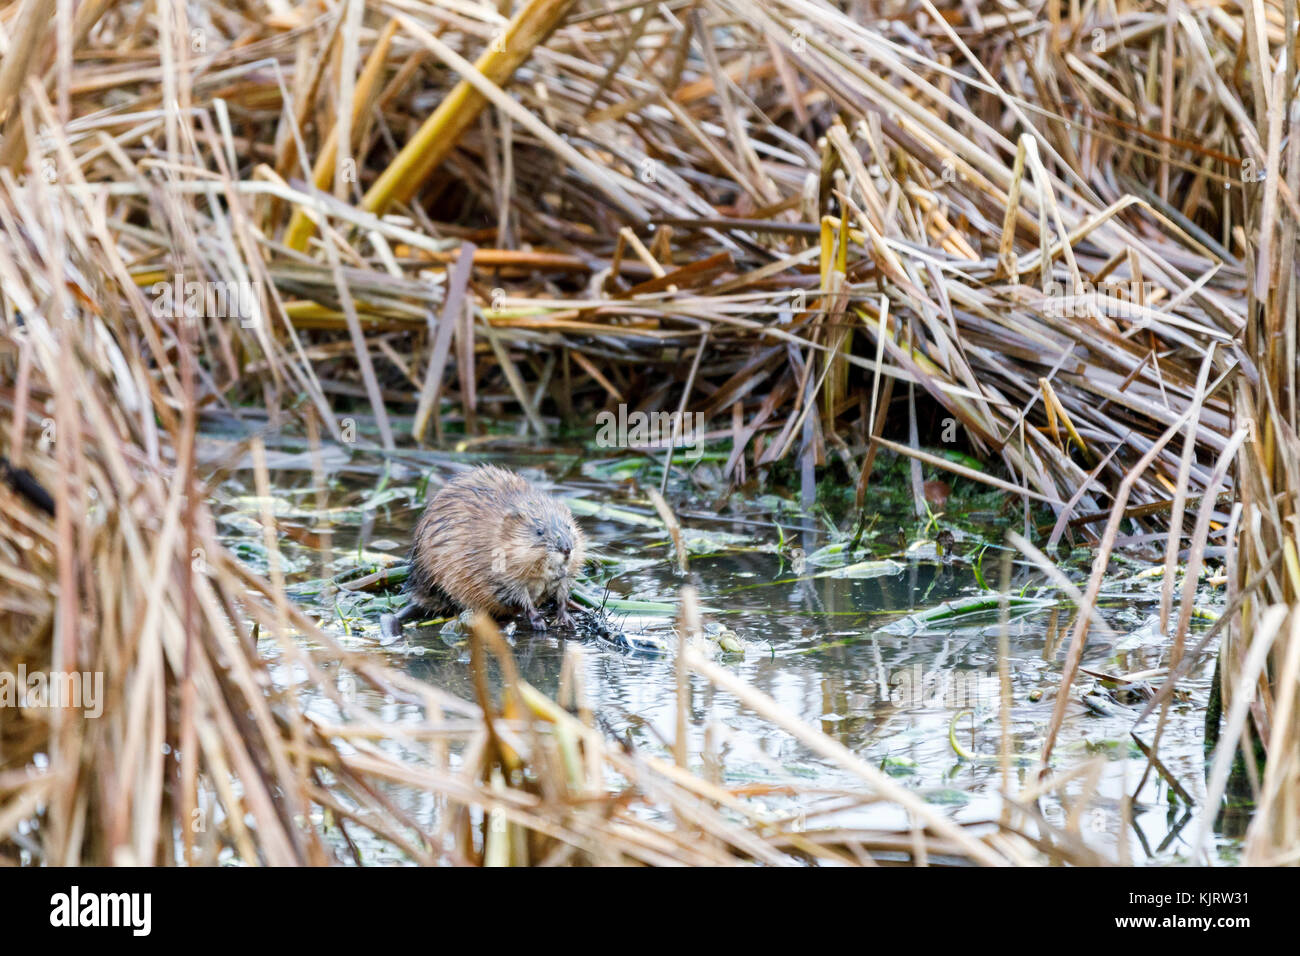 North American beaver sits in a water pool surrounded by hay bushes in autumn - Stock Image